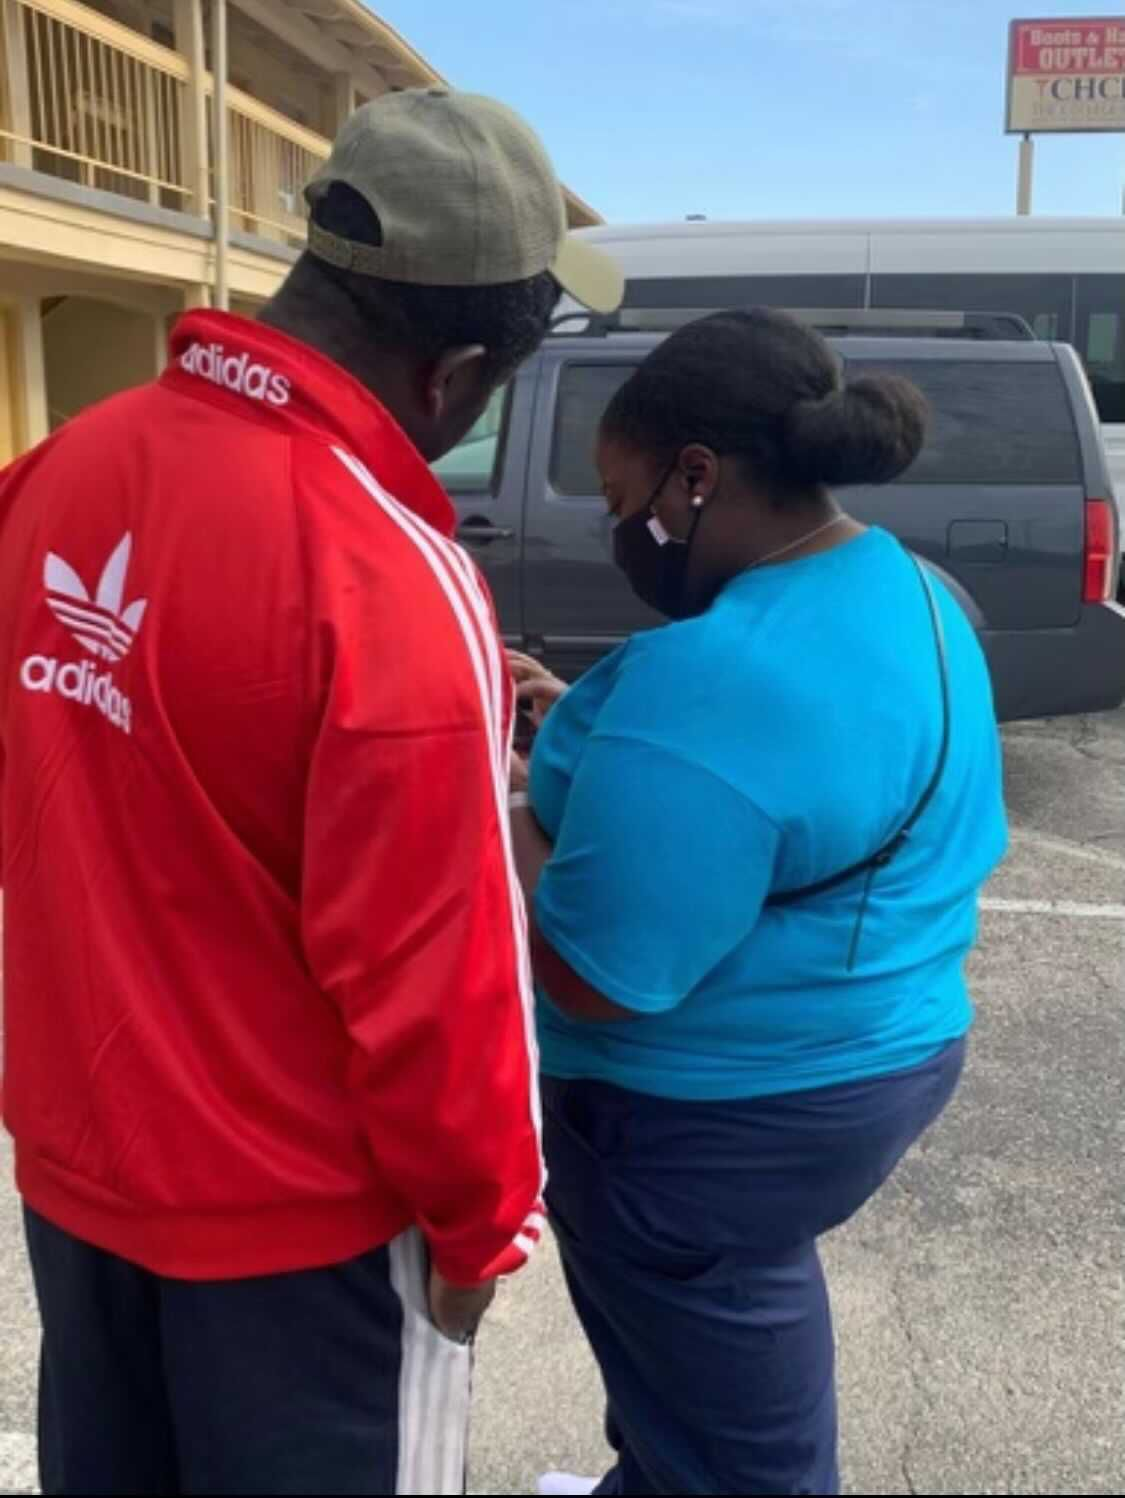 Patricia Nabal, the president of the Haitian American Nurses Association of Illinois, is among a group of Haitian community members from Chicago who recently traveled to the U.S. southern border to assess how they could assist Haitian migrants seeking asylum. Nabal is pictured speaking to a man she met on the trip.